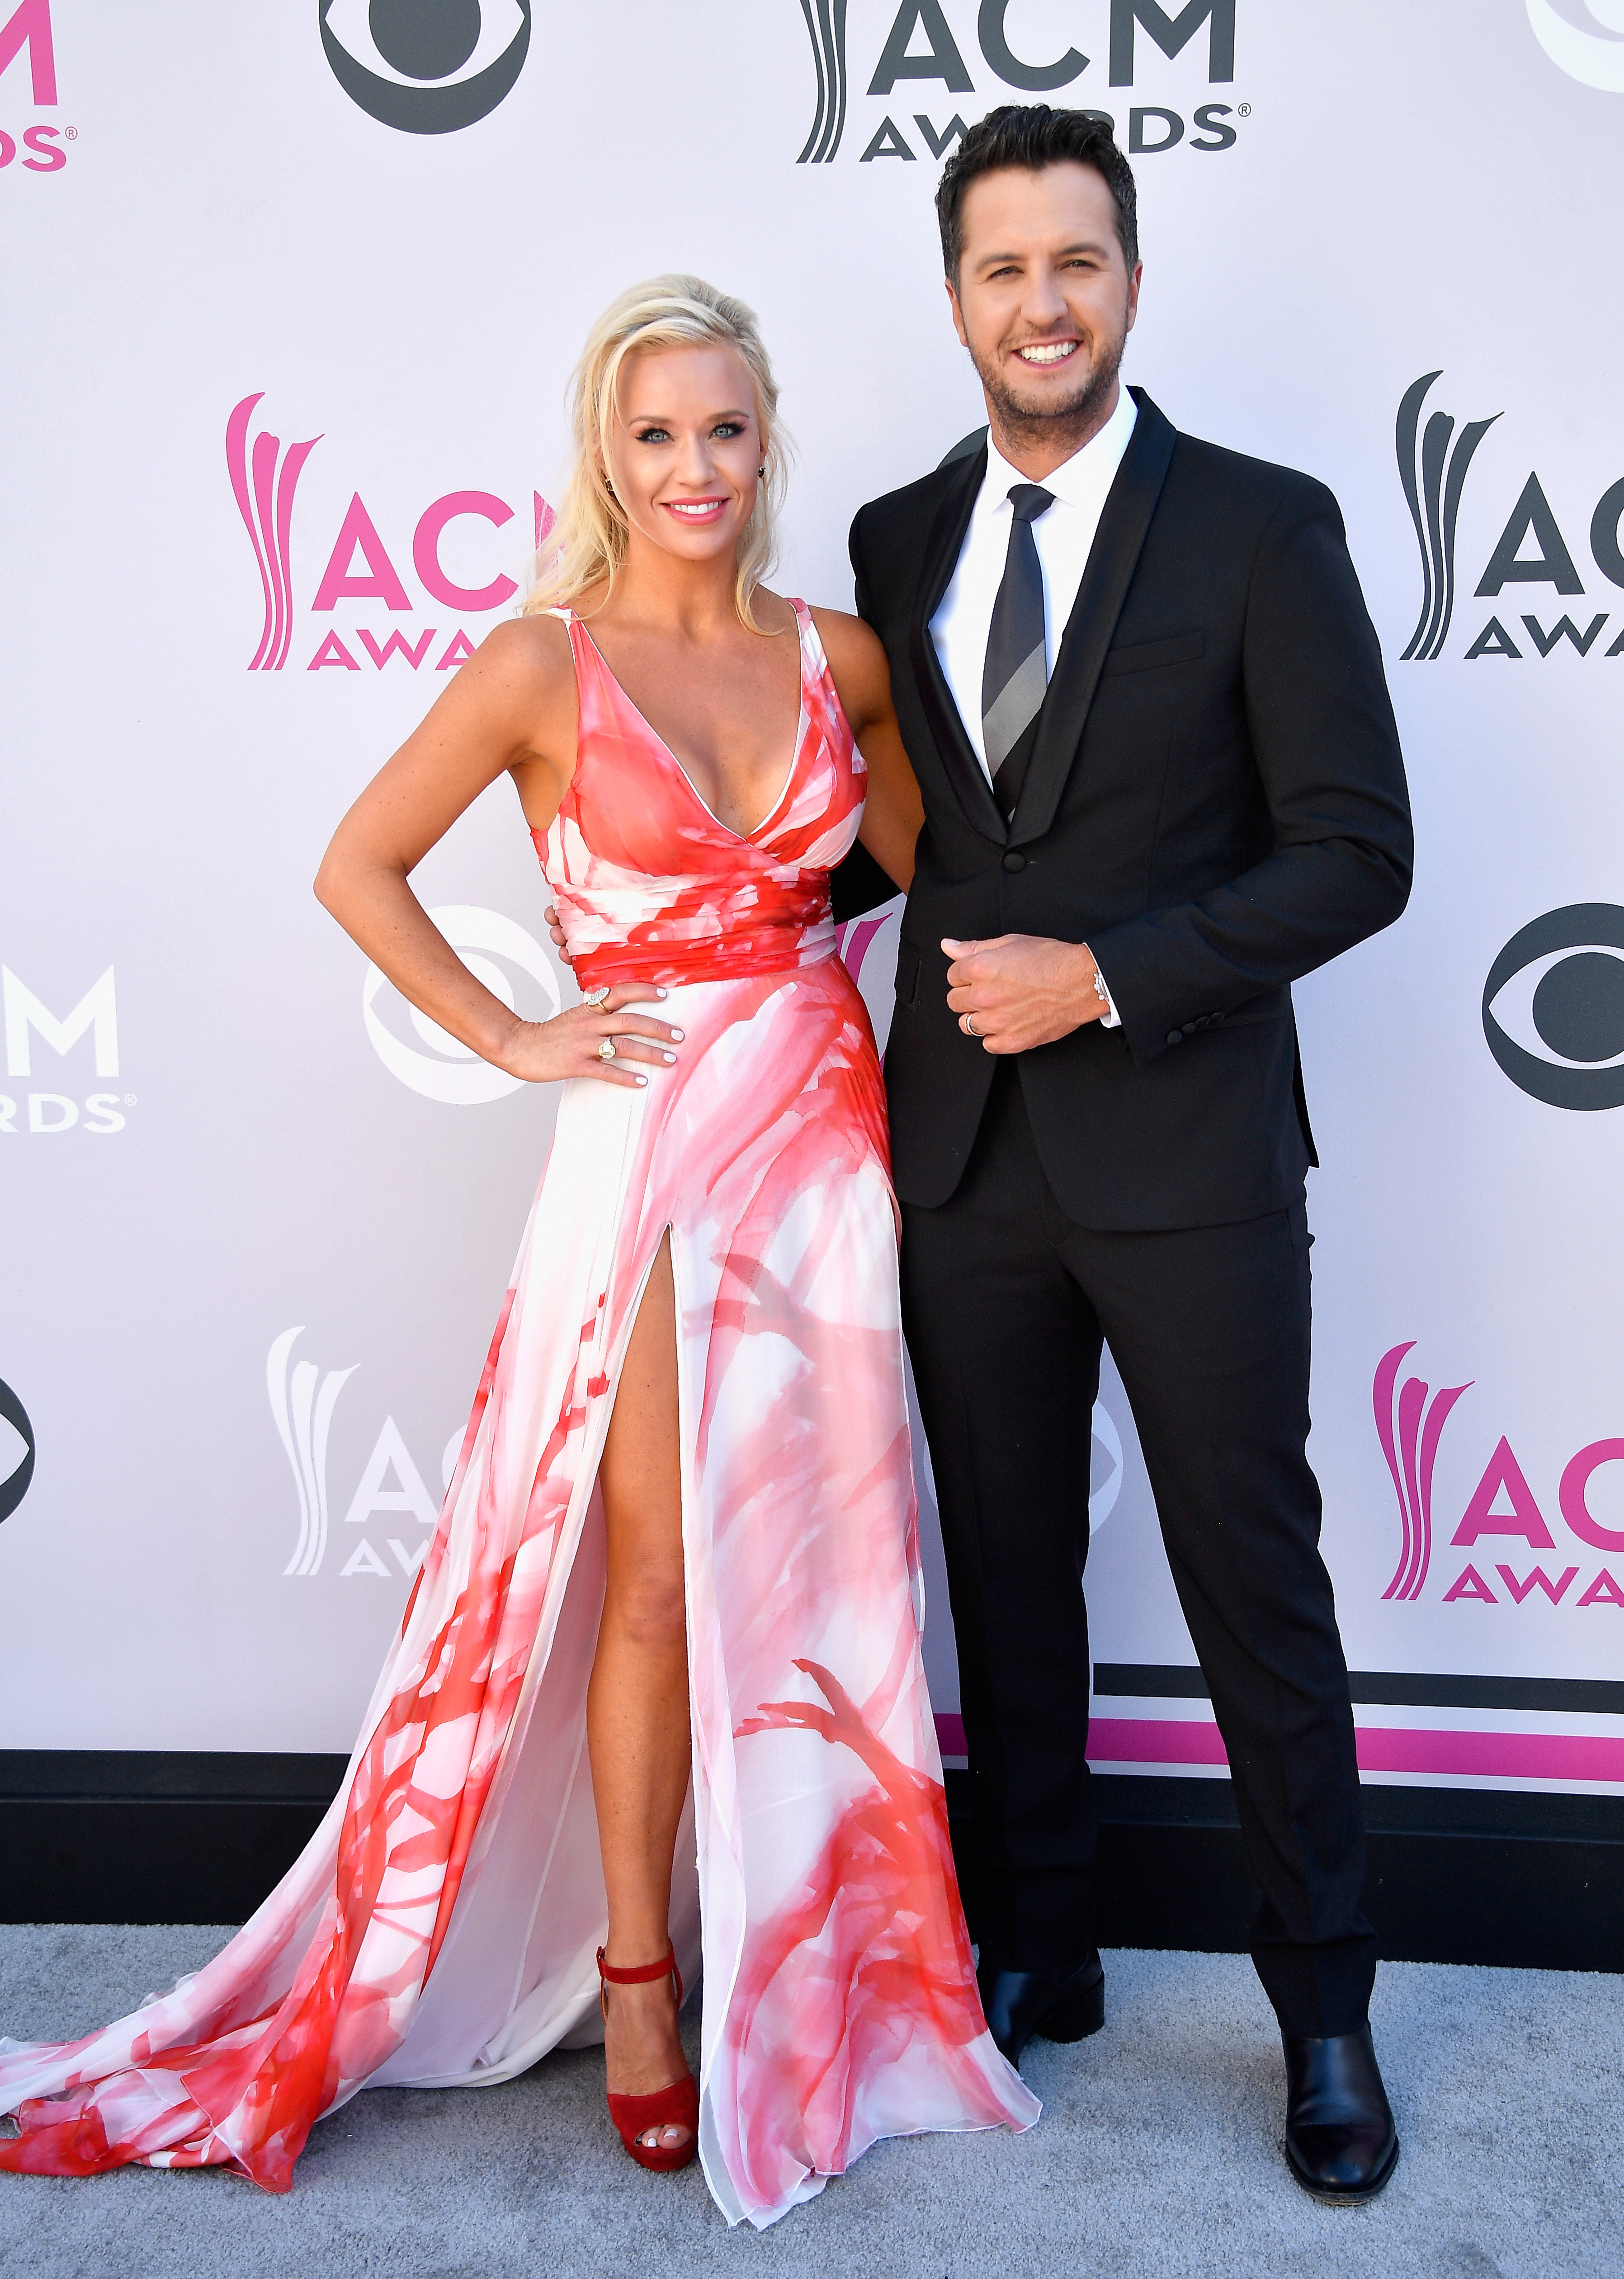 Caroline Boyer and Luke Bryan attend Photo by Frazer Harrison/Getty Images